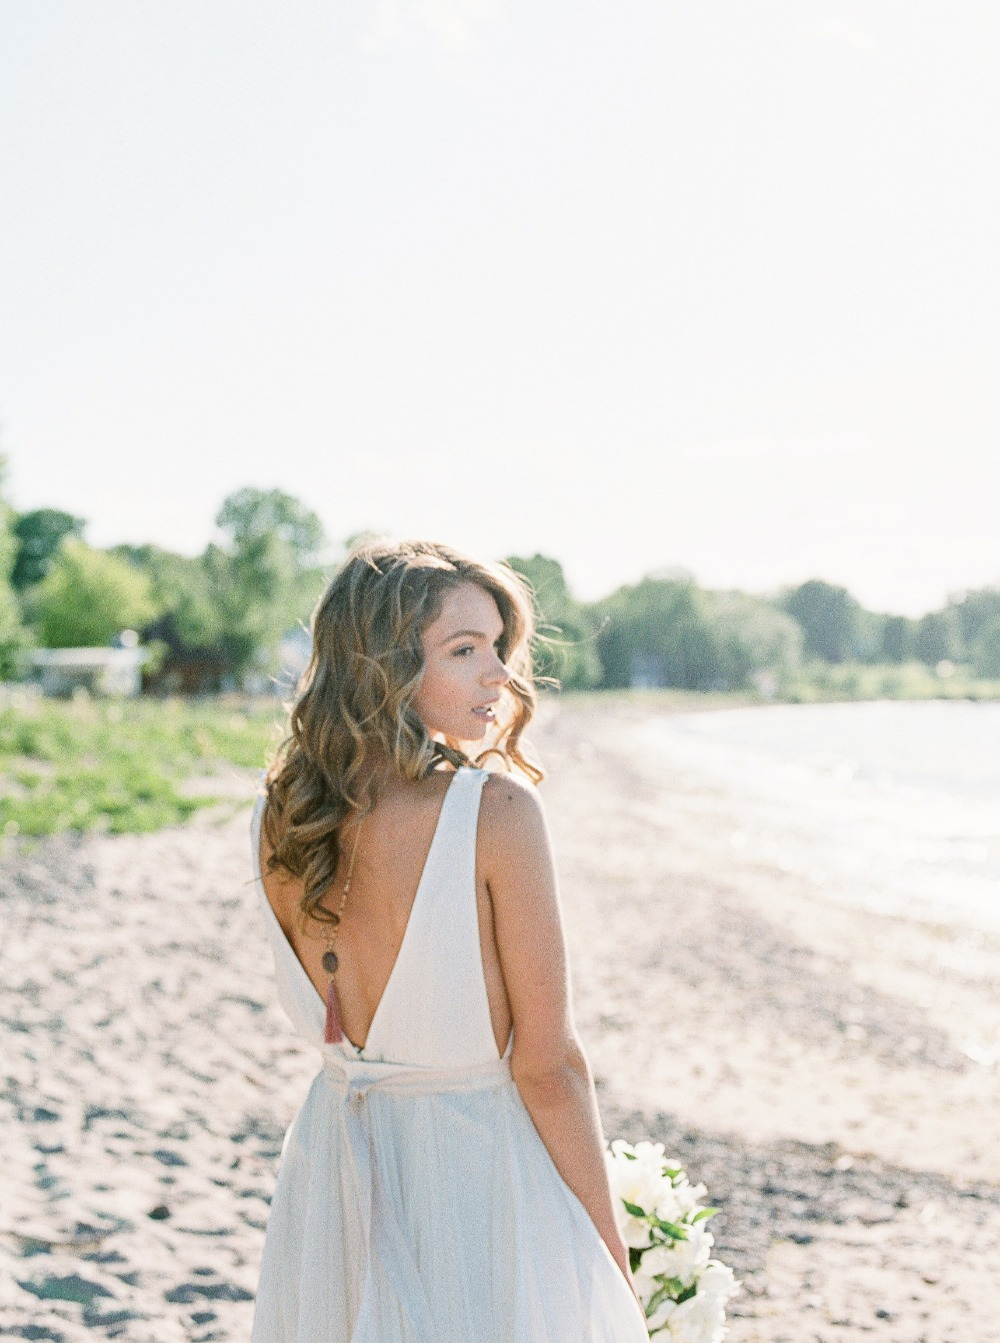 Bridal back necklace accessories